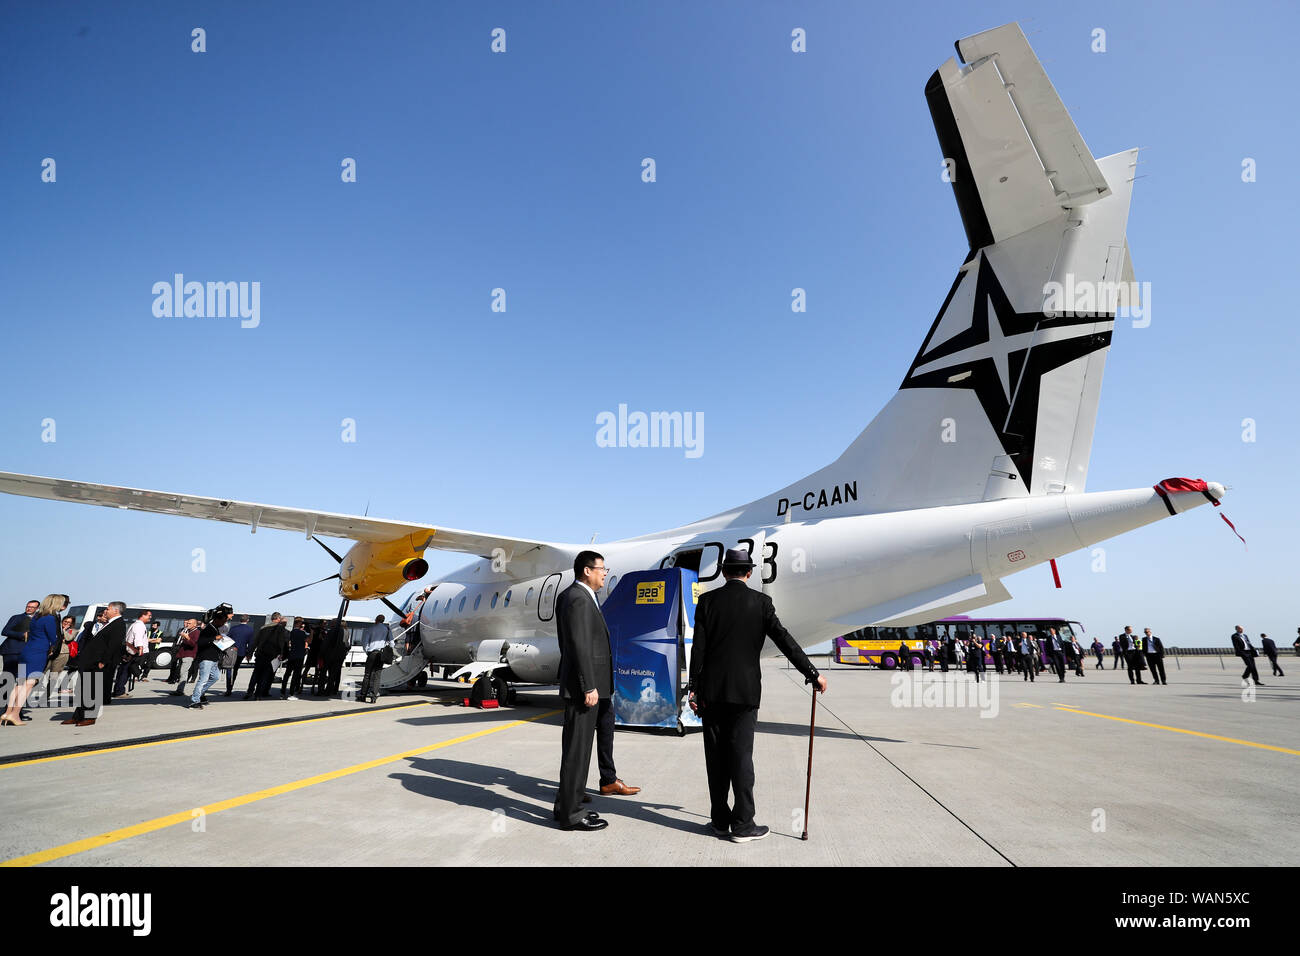 Schkeuditz, Germany. 21st Aug, 2019. Guests of the National Aviation Conference are standing in front of one (Dornier 328) at Leipzig-Halle Airport. Guiding principle of the conference: The German aviation industry should become more competitive and at the same time more environmentally friendly. Among those expected are the Federal Chancellor, the Minister of Transport, the Minister of Economics and the CEO of Lufthansa. Discussions are also likely to take place about the air traffic tax. Credit: Jan Woitas/dpa-Zentralbild/dpa/Alamy Live News Stock Photo